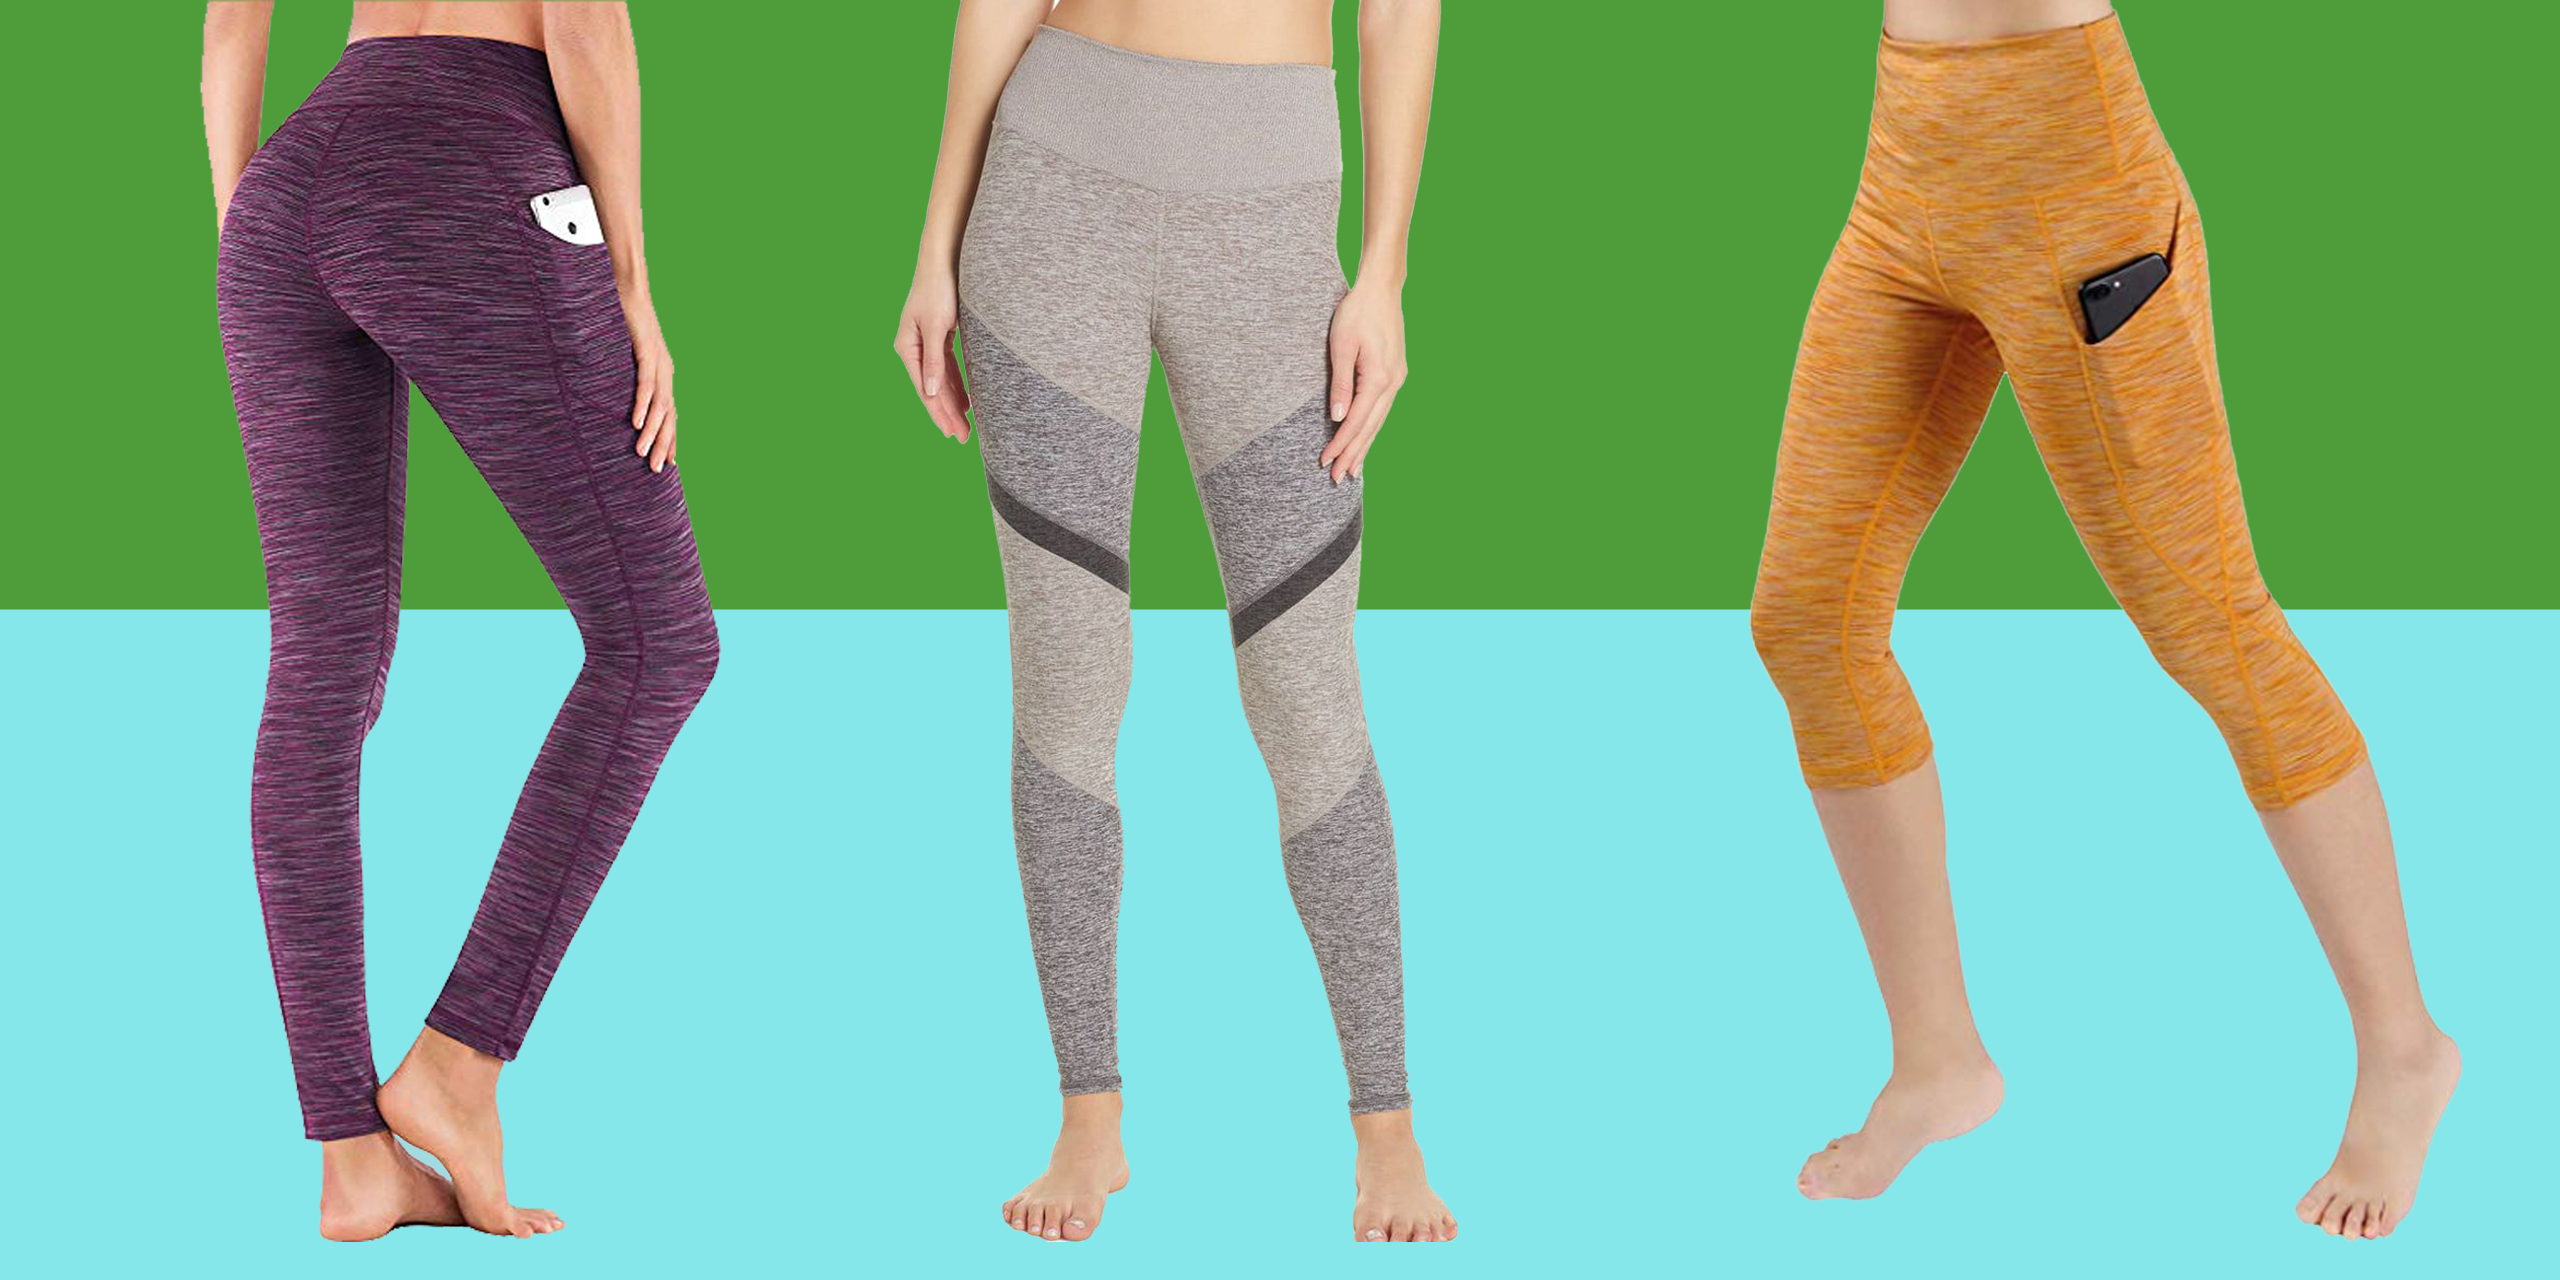 9b096f3a2a3ea 20 Best Leggings and Yoga Pants With Pockets 2019 - Workout Leggings With  Side Pockets